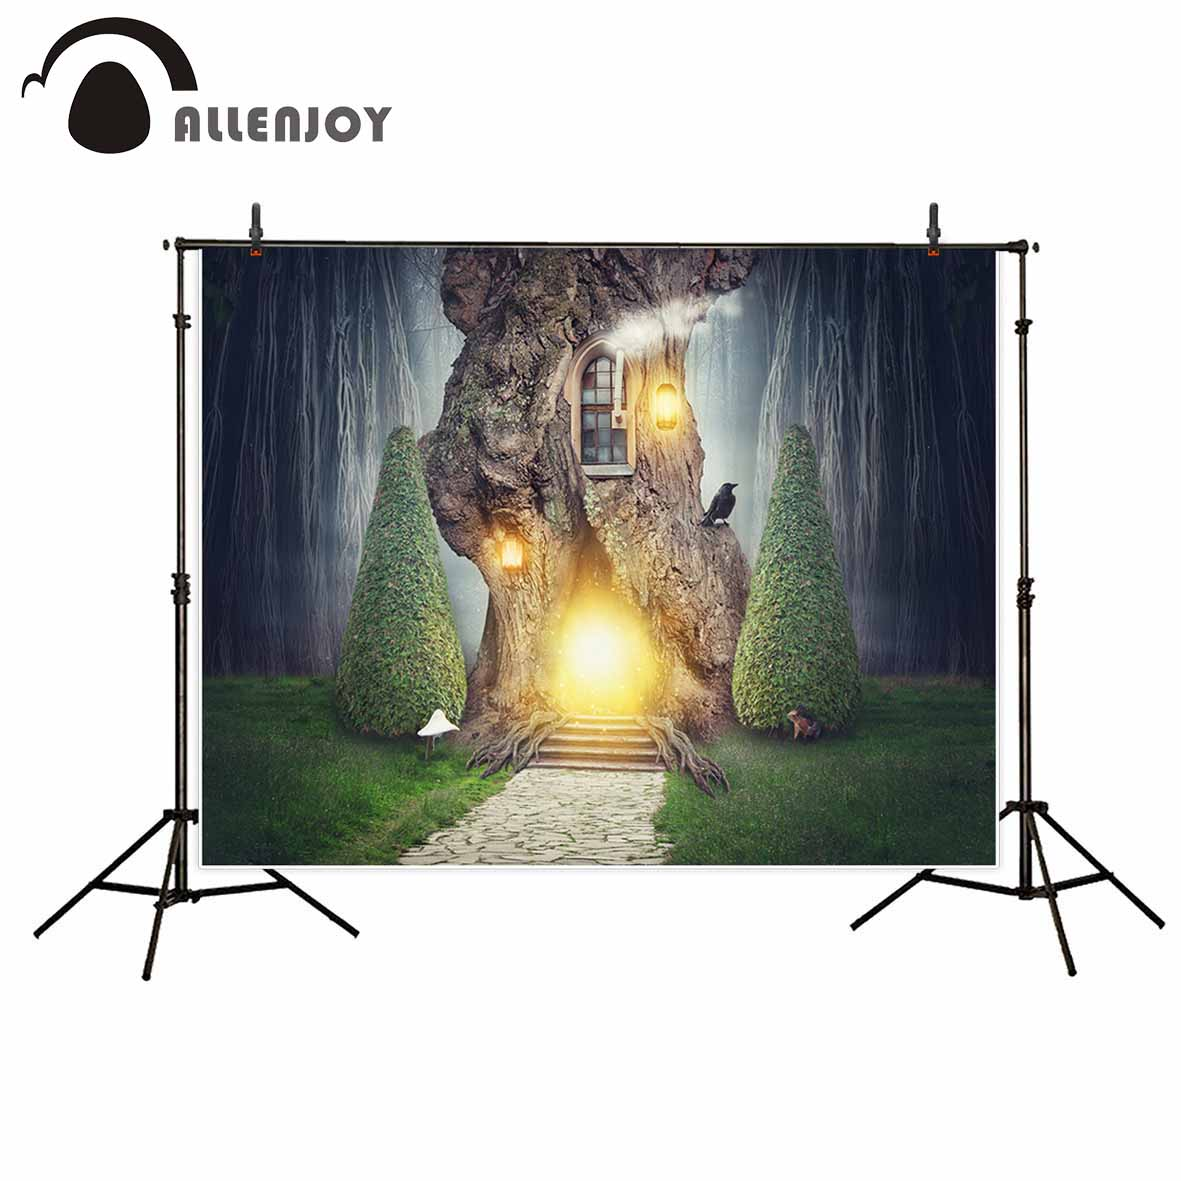 Allenjoy photographic background wonderland tree house glitter squirrel backdrop photo prop photobooth photocall professional allenjoy background for photo studio baby shower monthly growth backdrop photobooth photocall printed photographic accessories